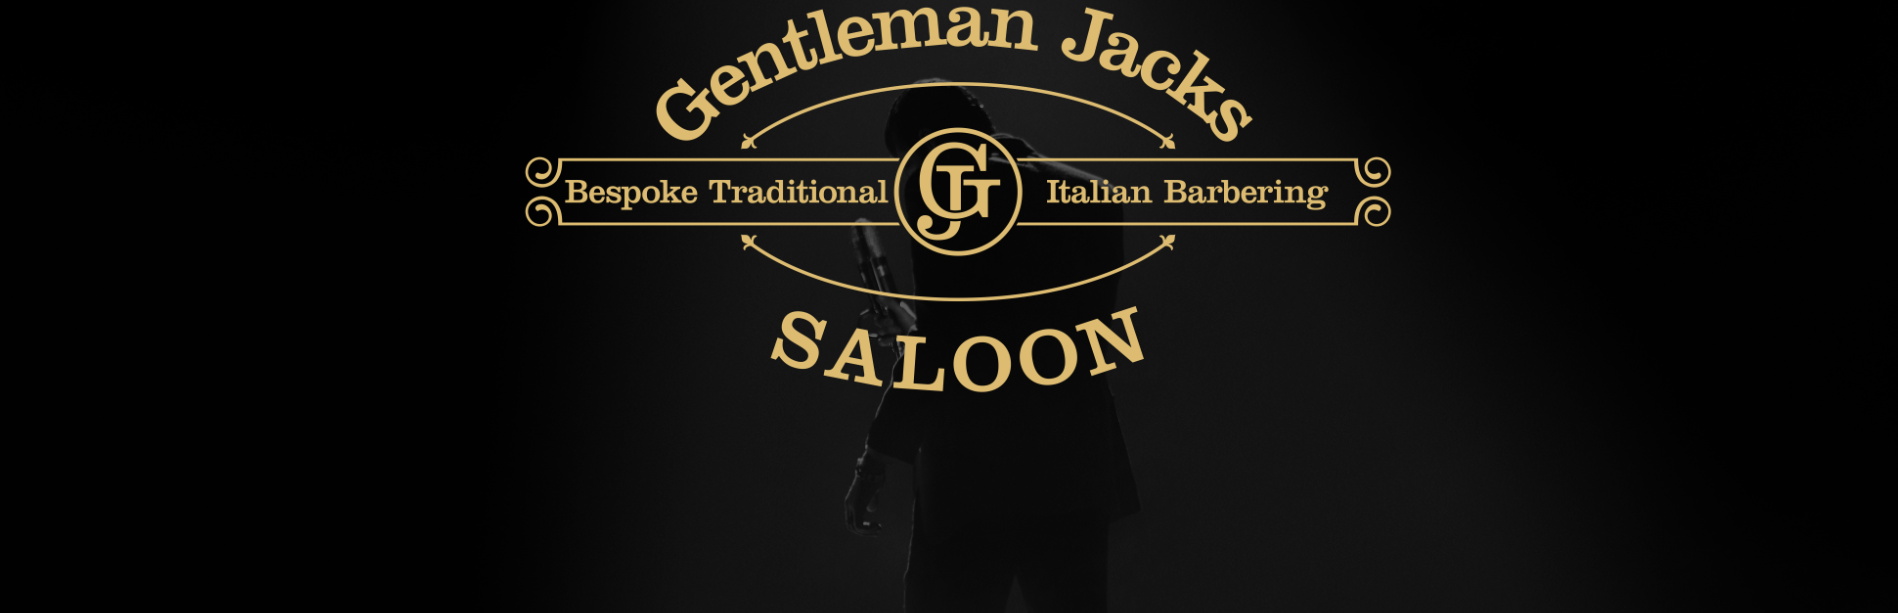 Gentleman Jacks Barber